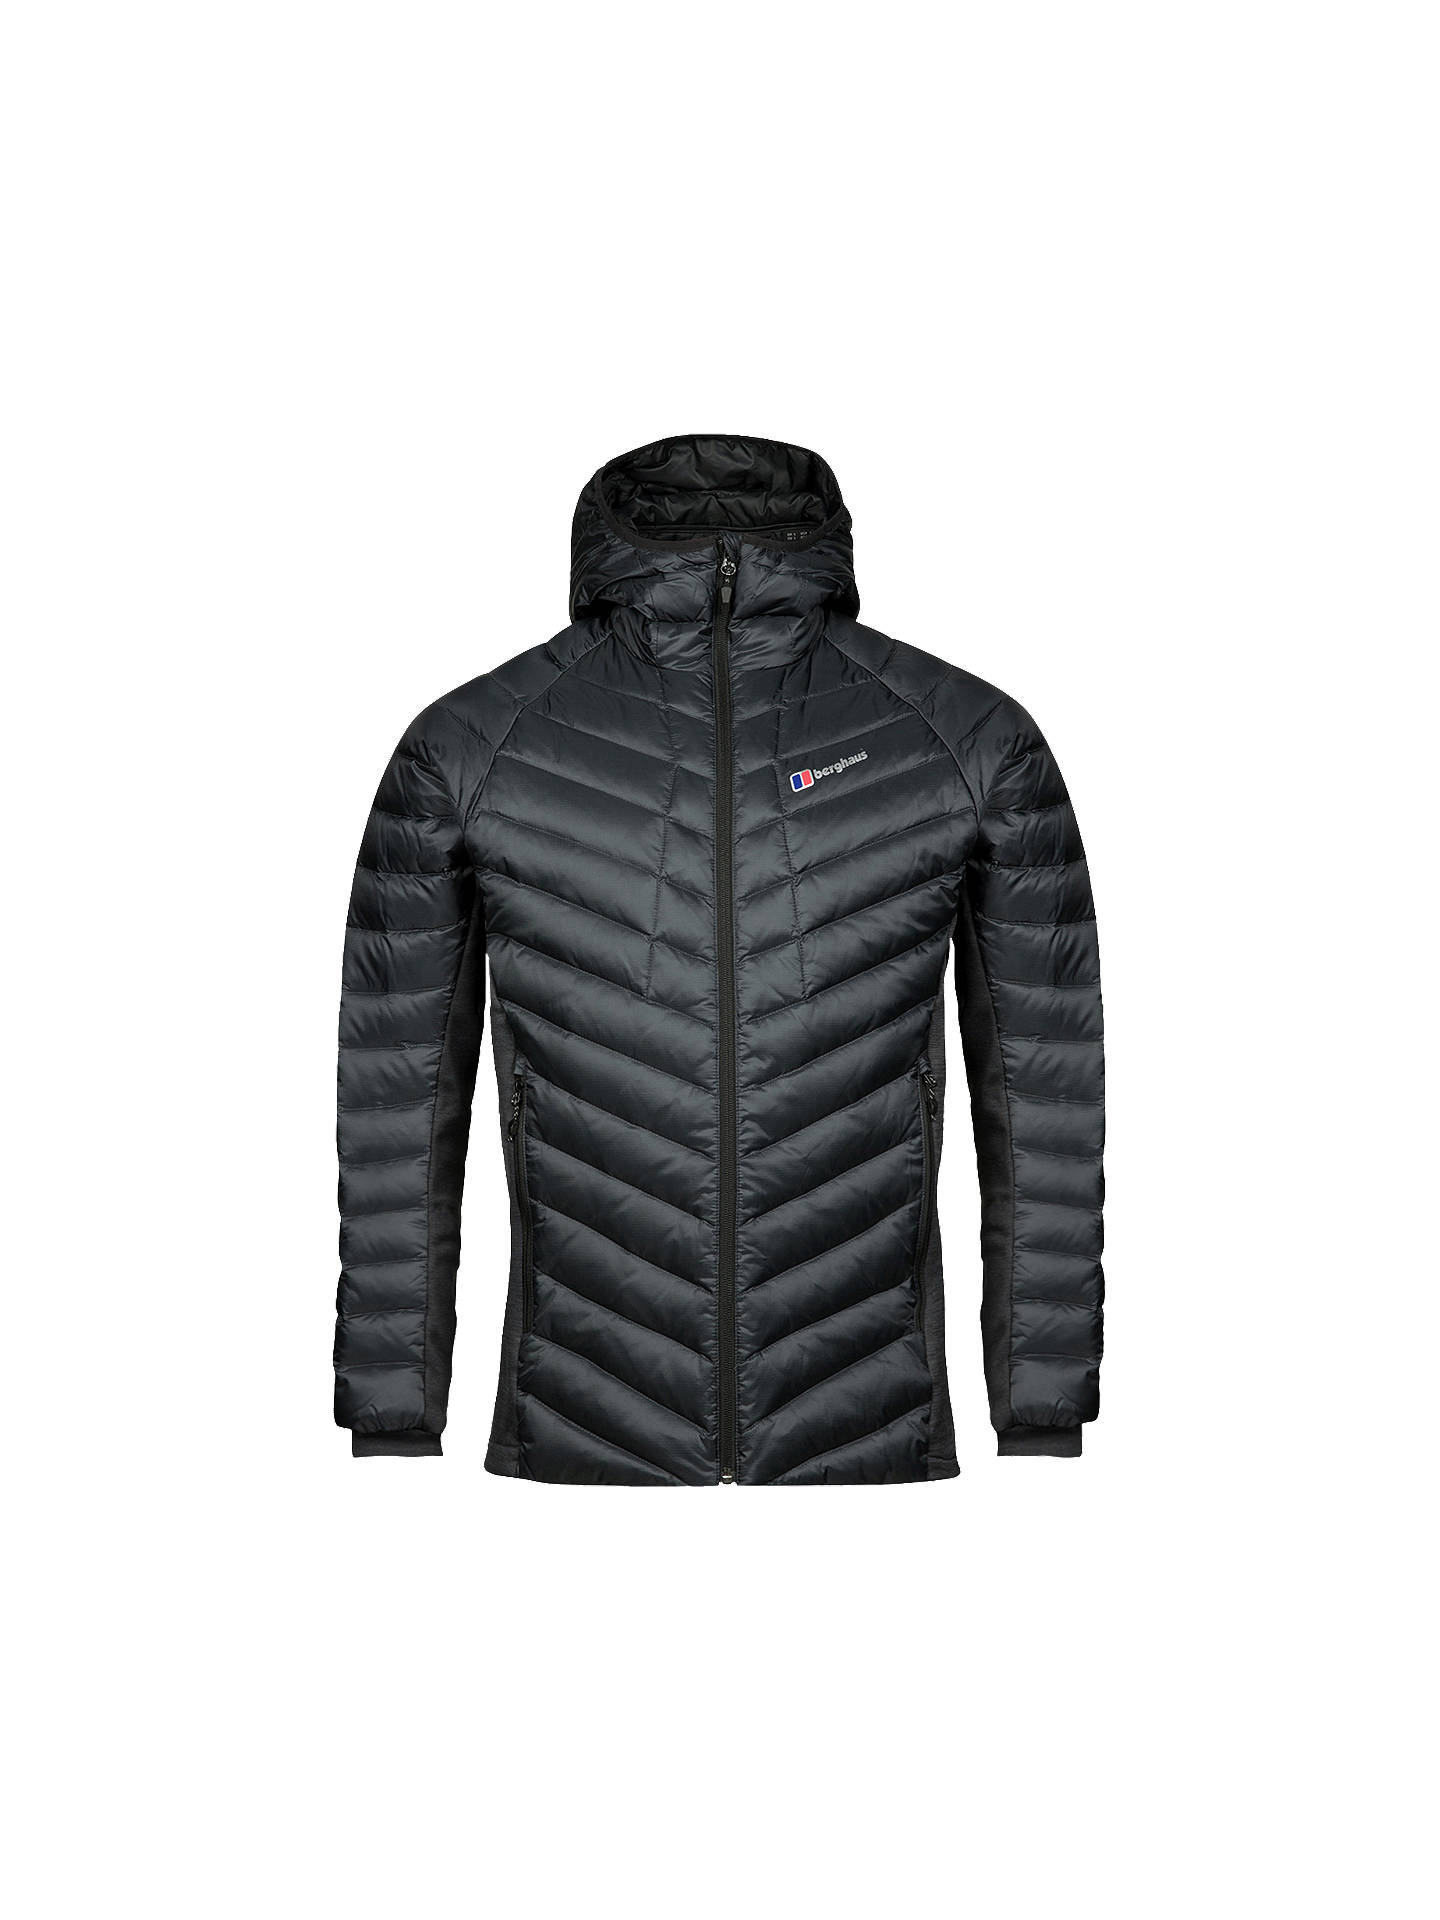 Buy Berghaus Tephra Women's Insulated Jacket, Carbon, 8 Online at johnlewis.com